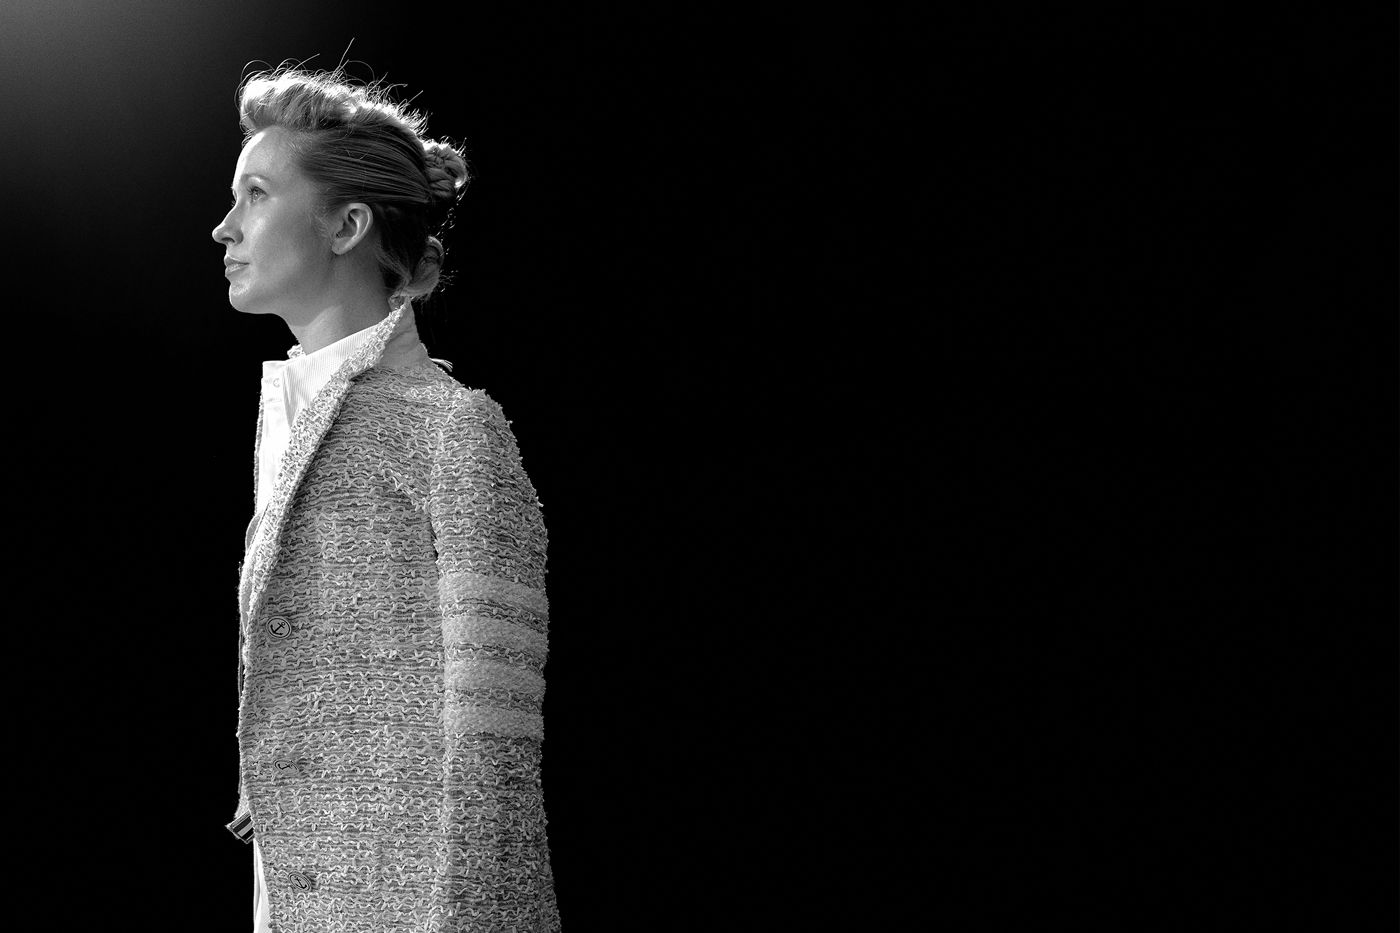 All clothing by Thom Browne.